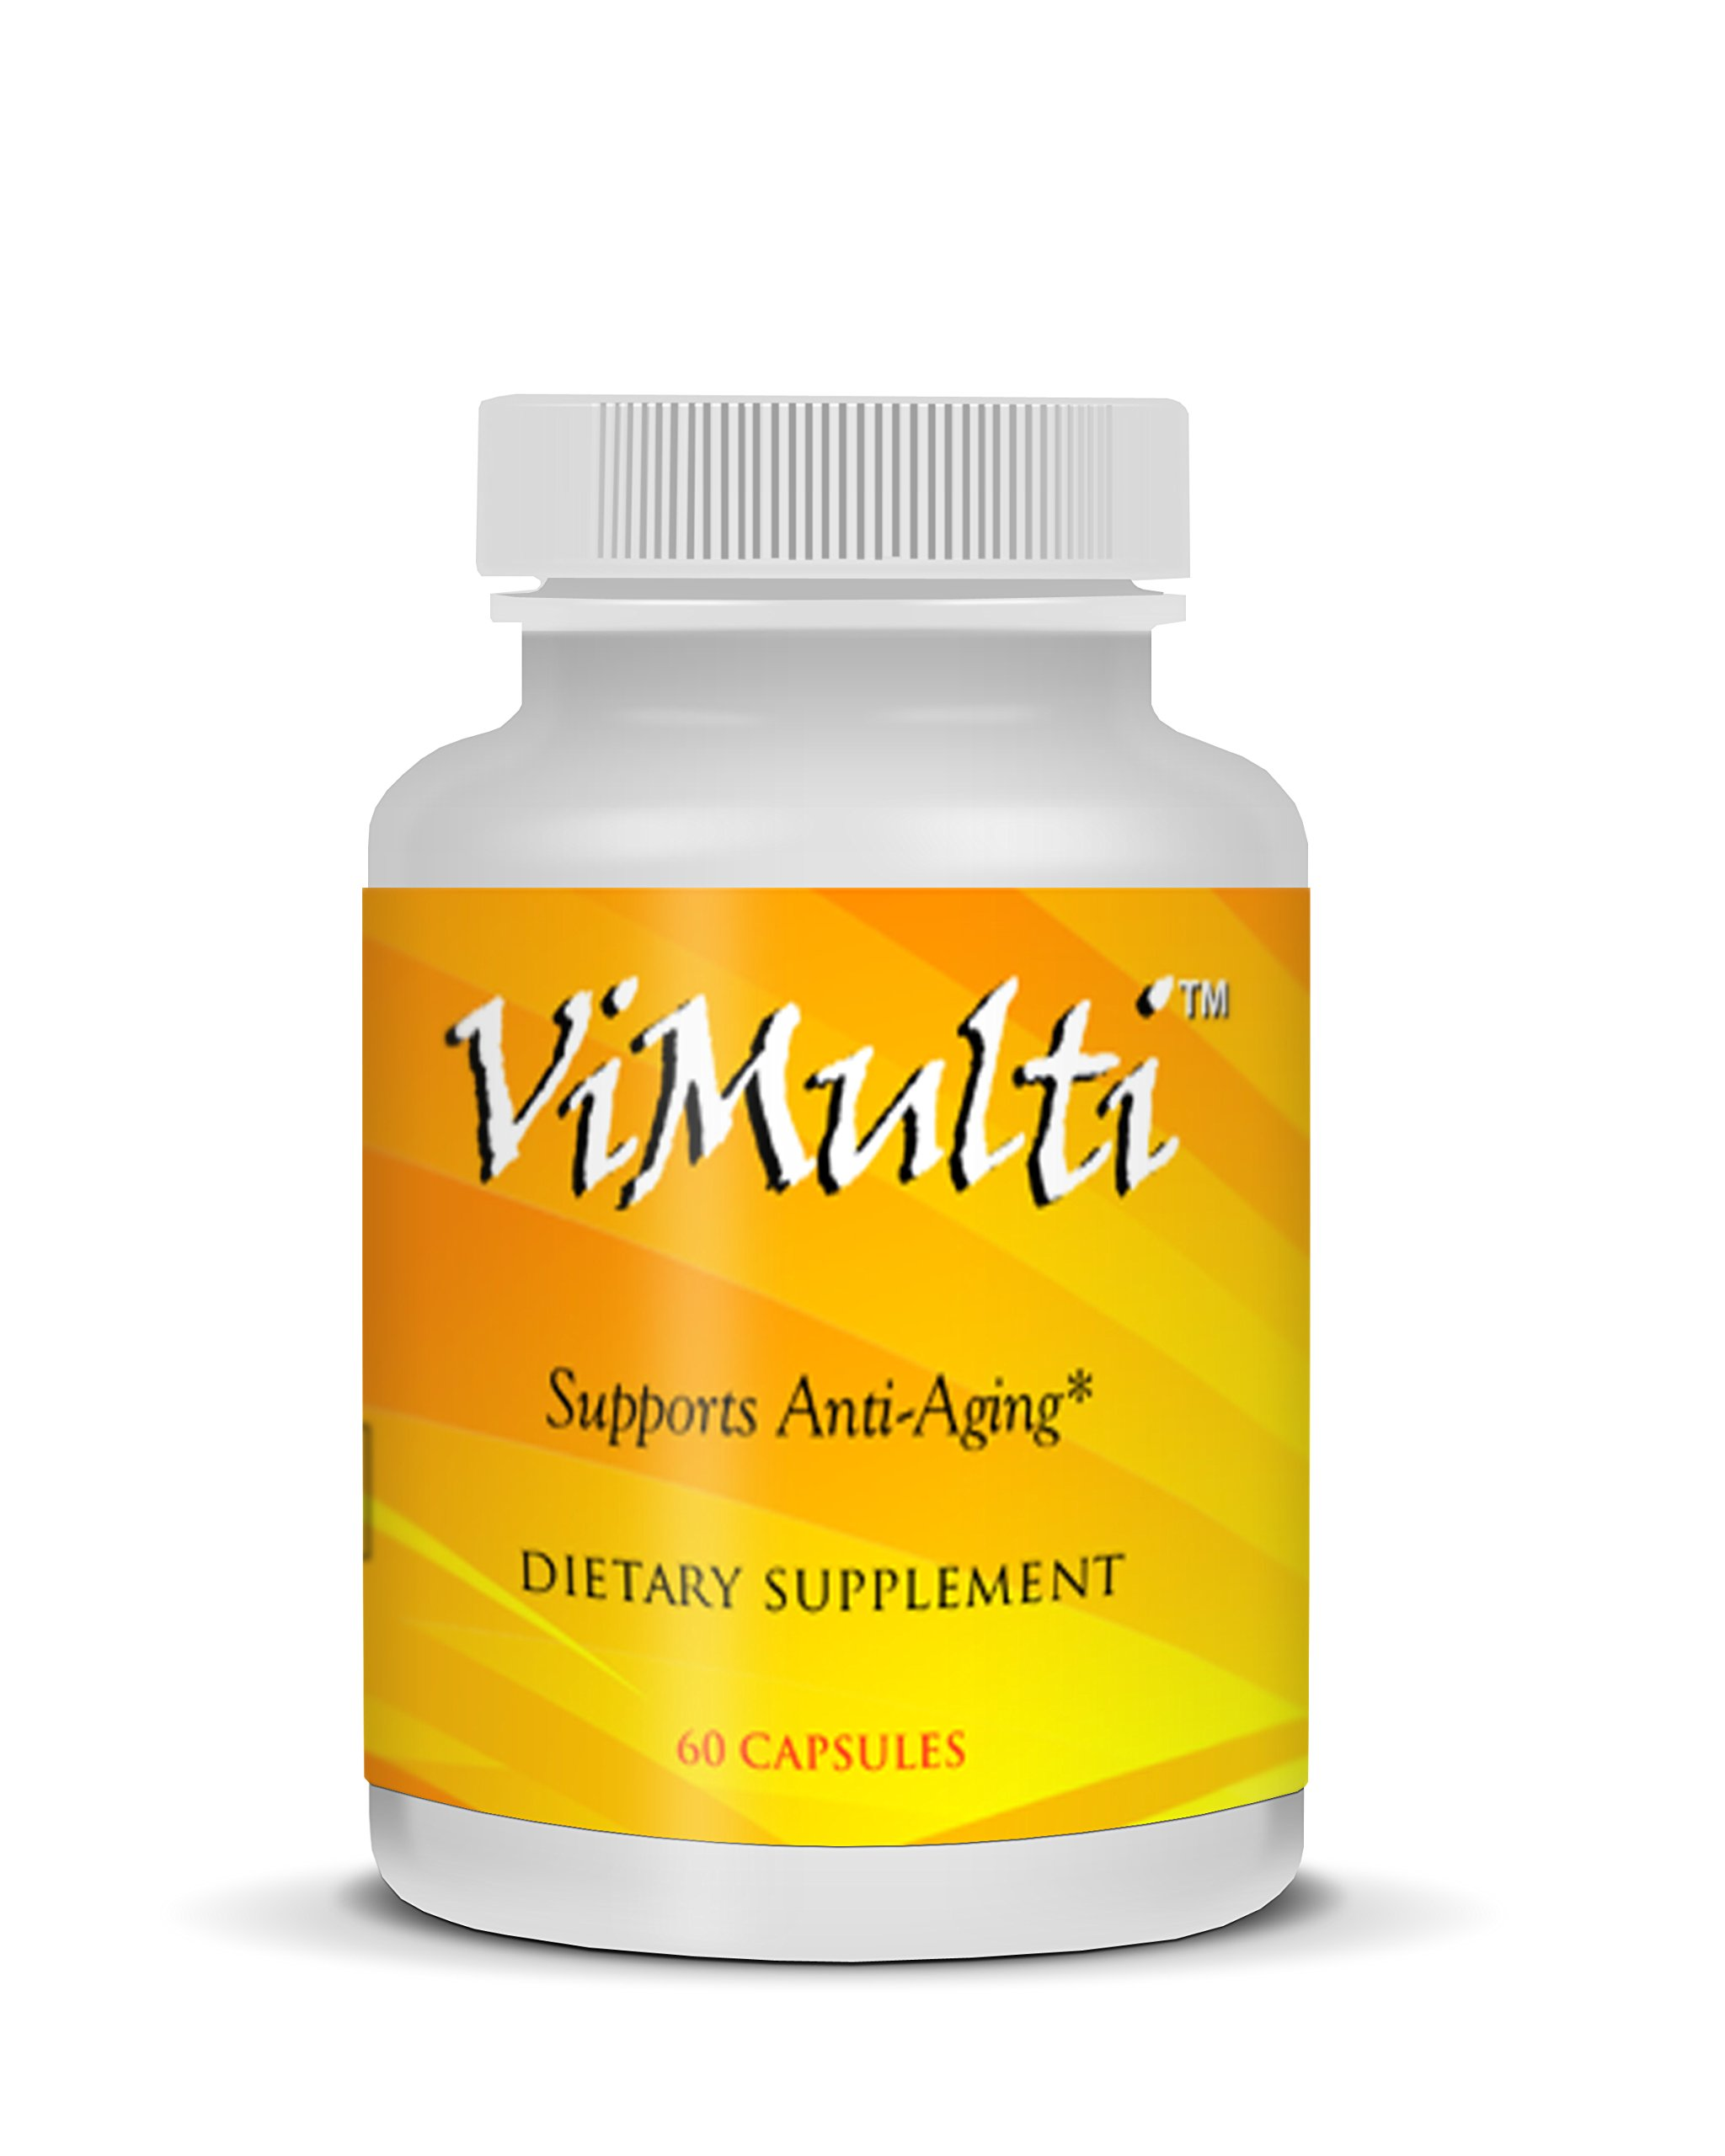 Vimulti Anti-Aging 3 Pack Supports Strong Hair Growth, Stronger Nails While Helping Manage Weight and Muscle Growth